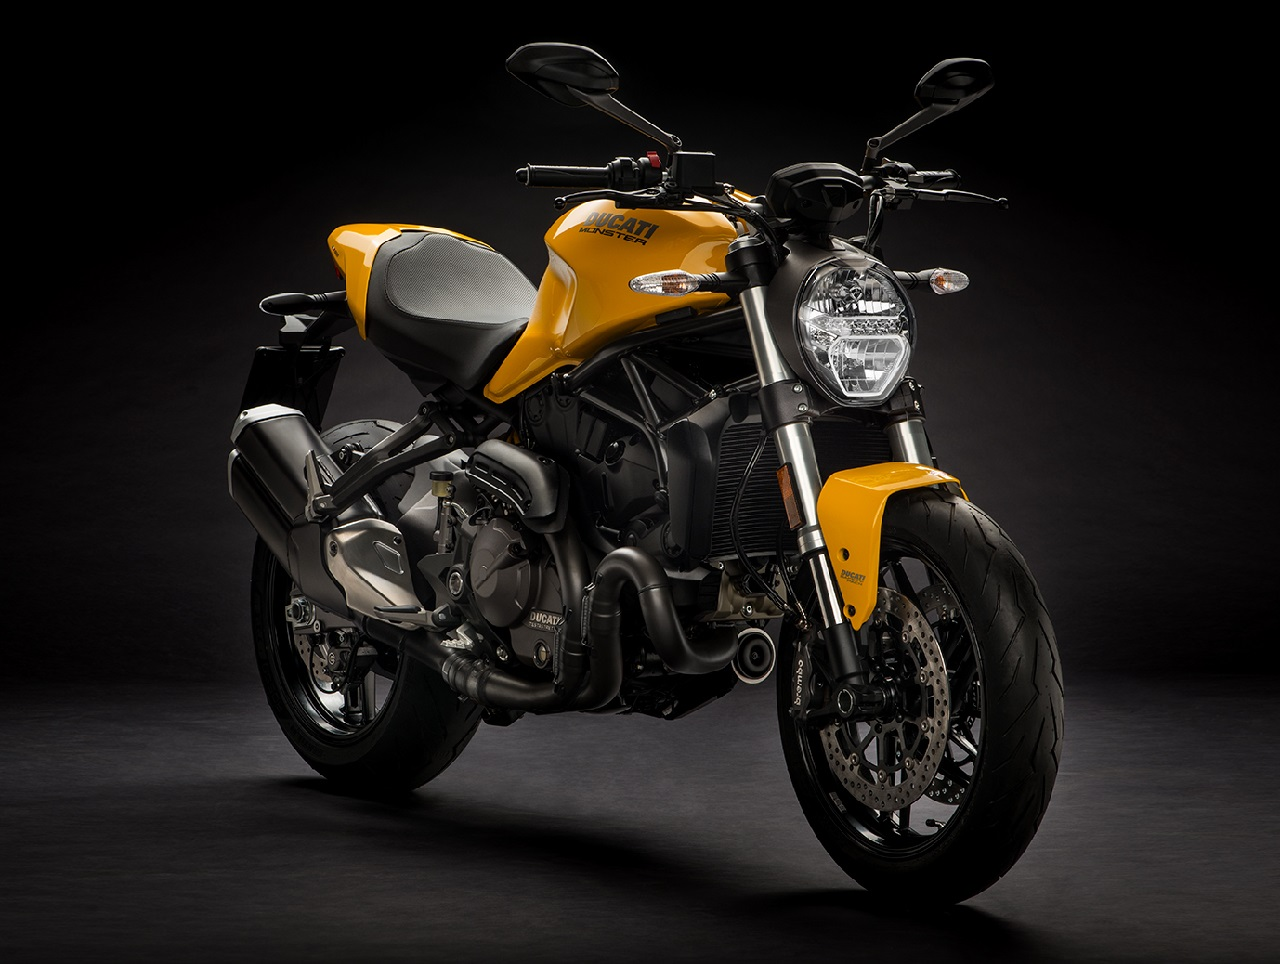 2018 Ducati Monster 821 Yellow press front right quarter